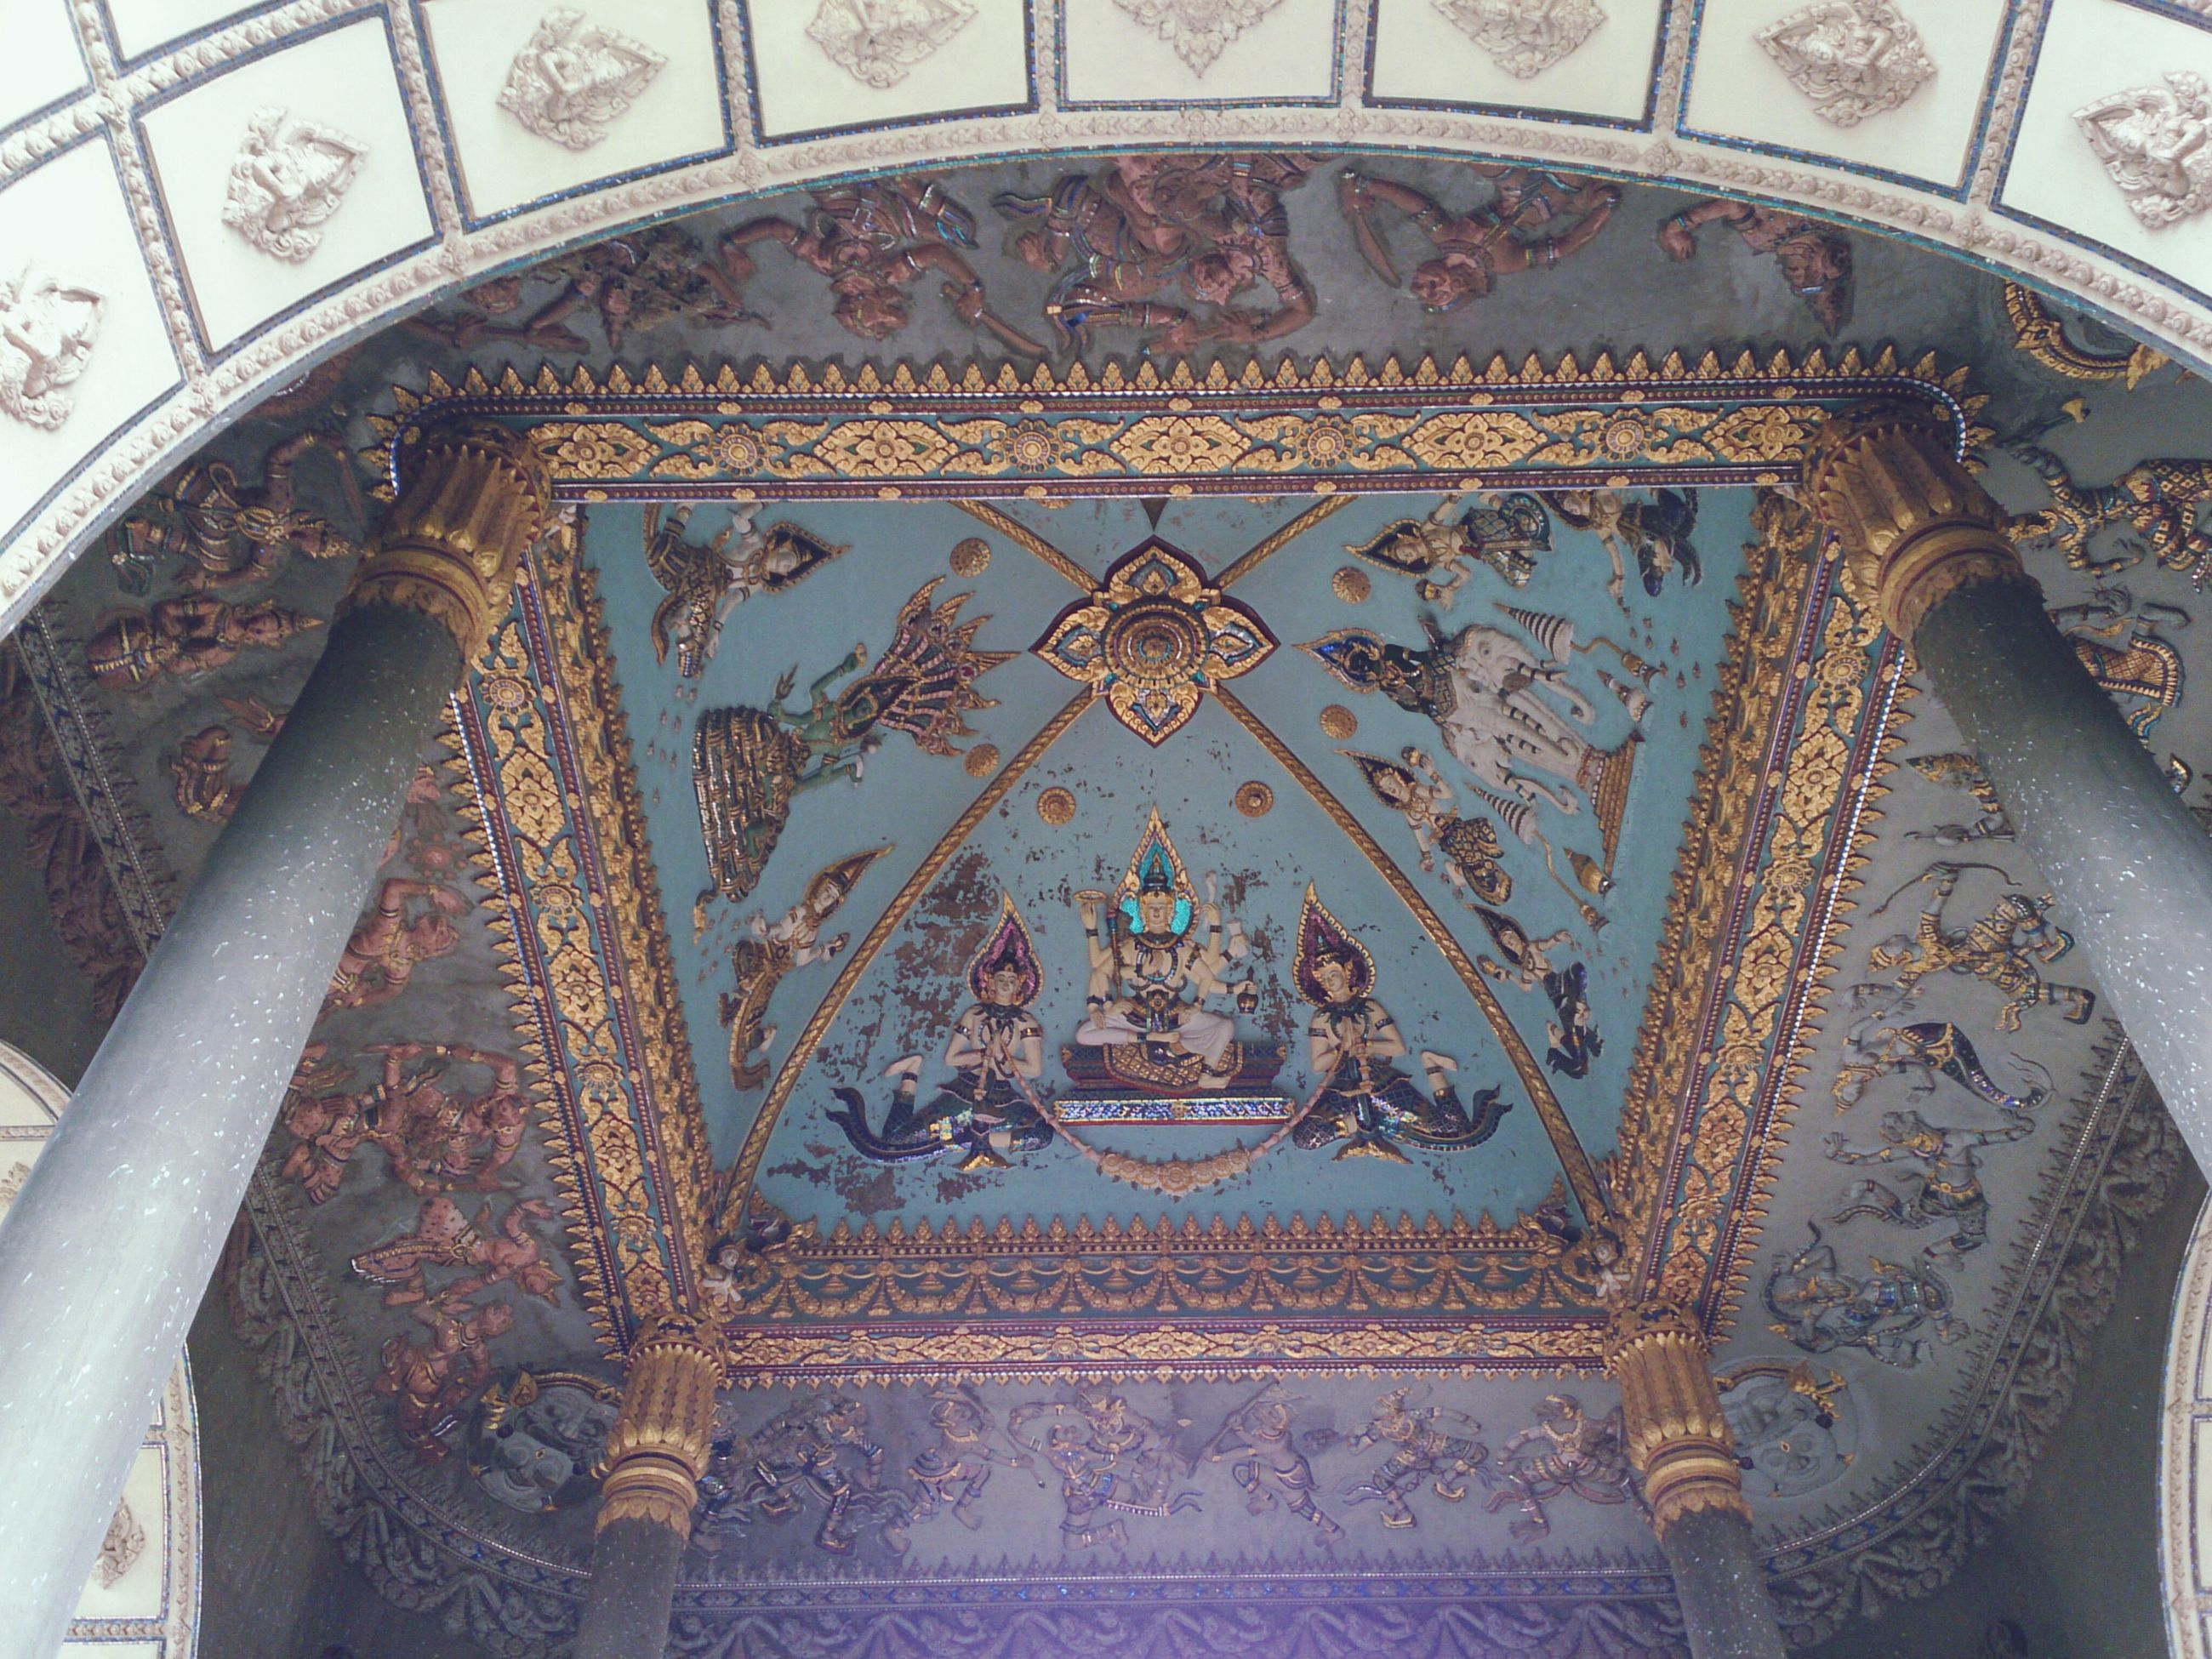 indoors, ceiling, low angle view, architecture, built structure, pattern, design, ornate, art and craft, art, famous place, architectural feature, creativity, religion, place of worship, travel destinations, travel, tourism, international landmark, arch